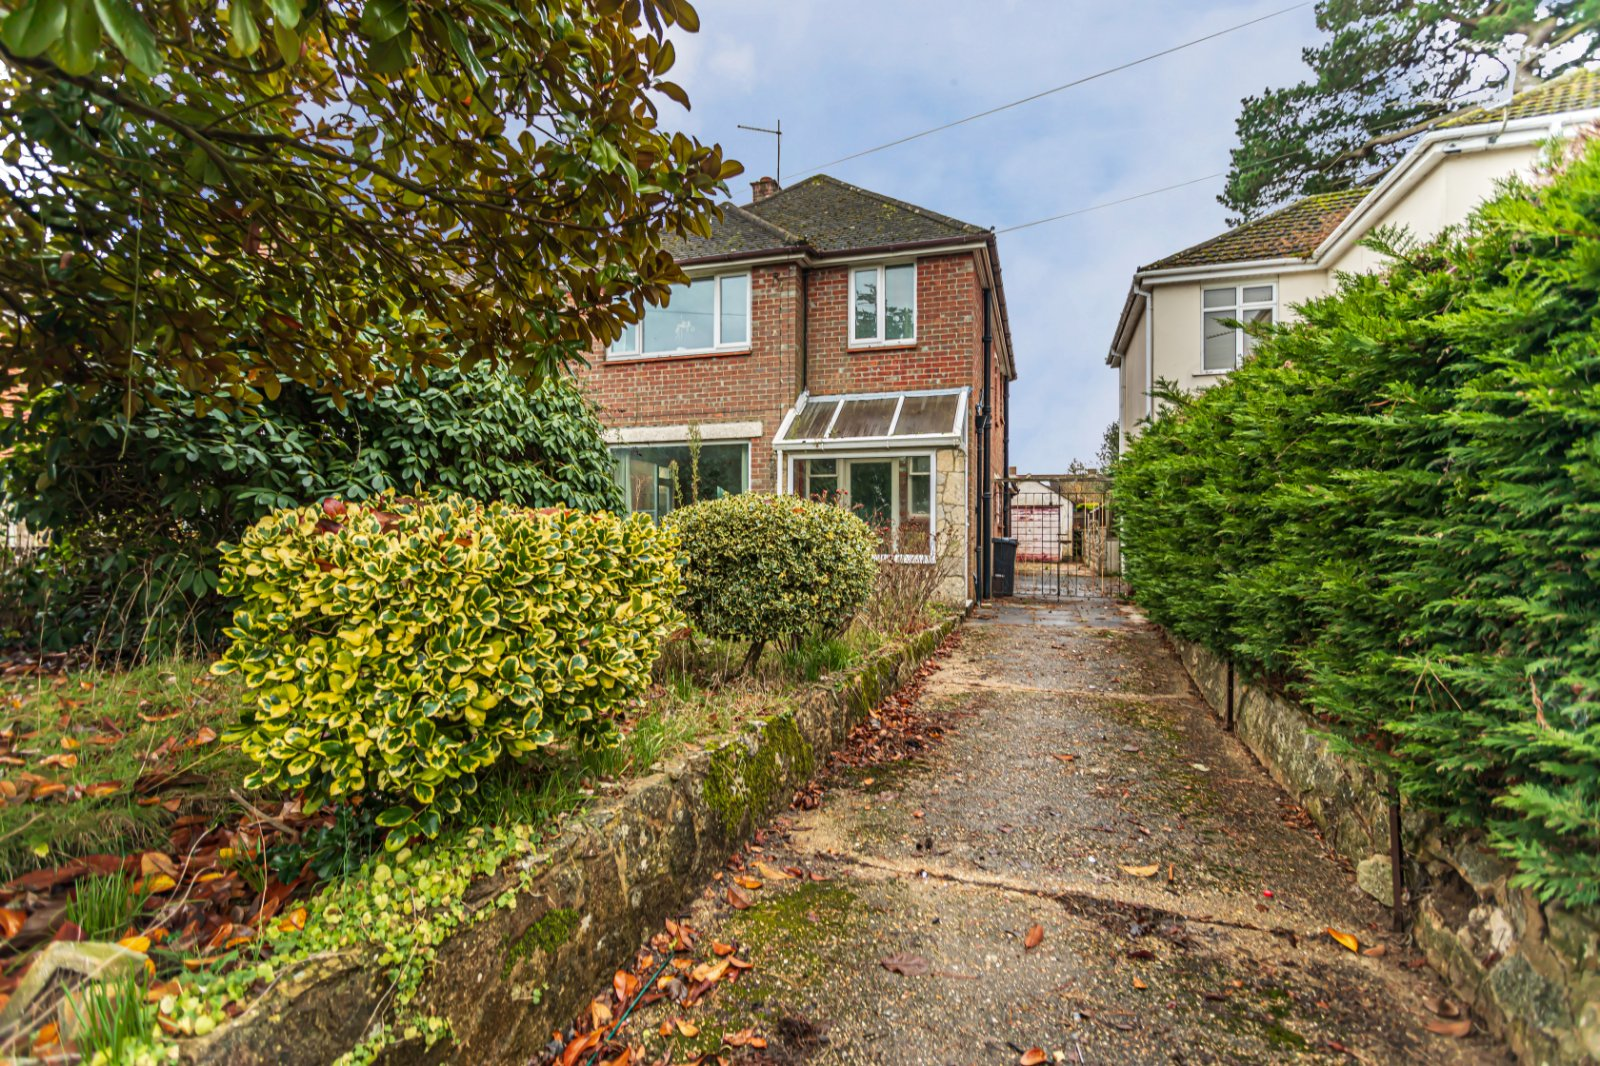 3 bed house for sale in Bournemouth - Property Image 1